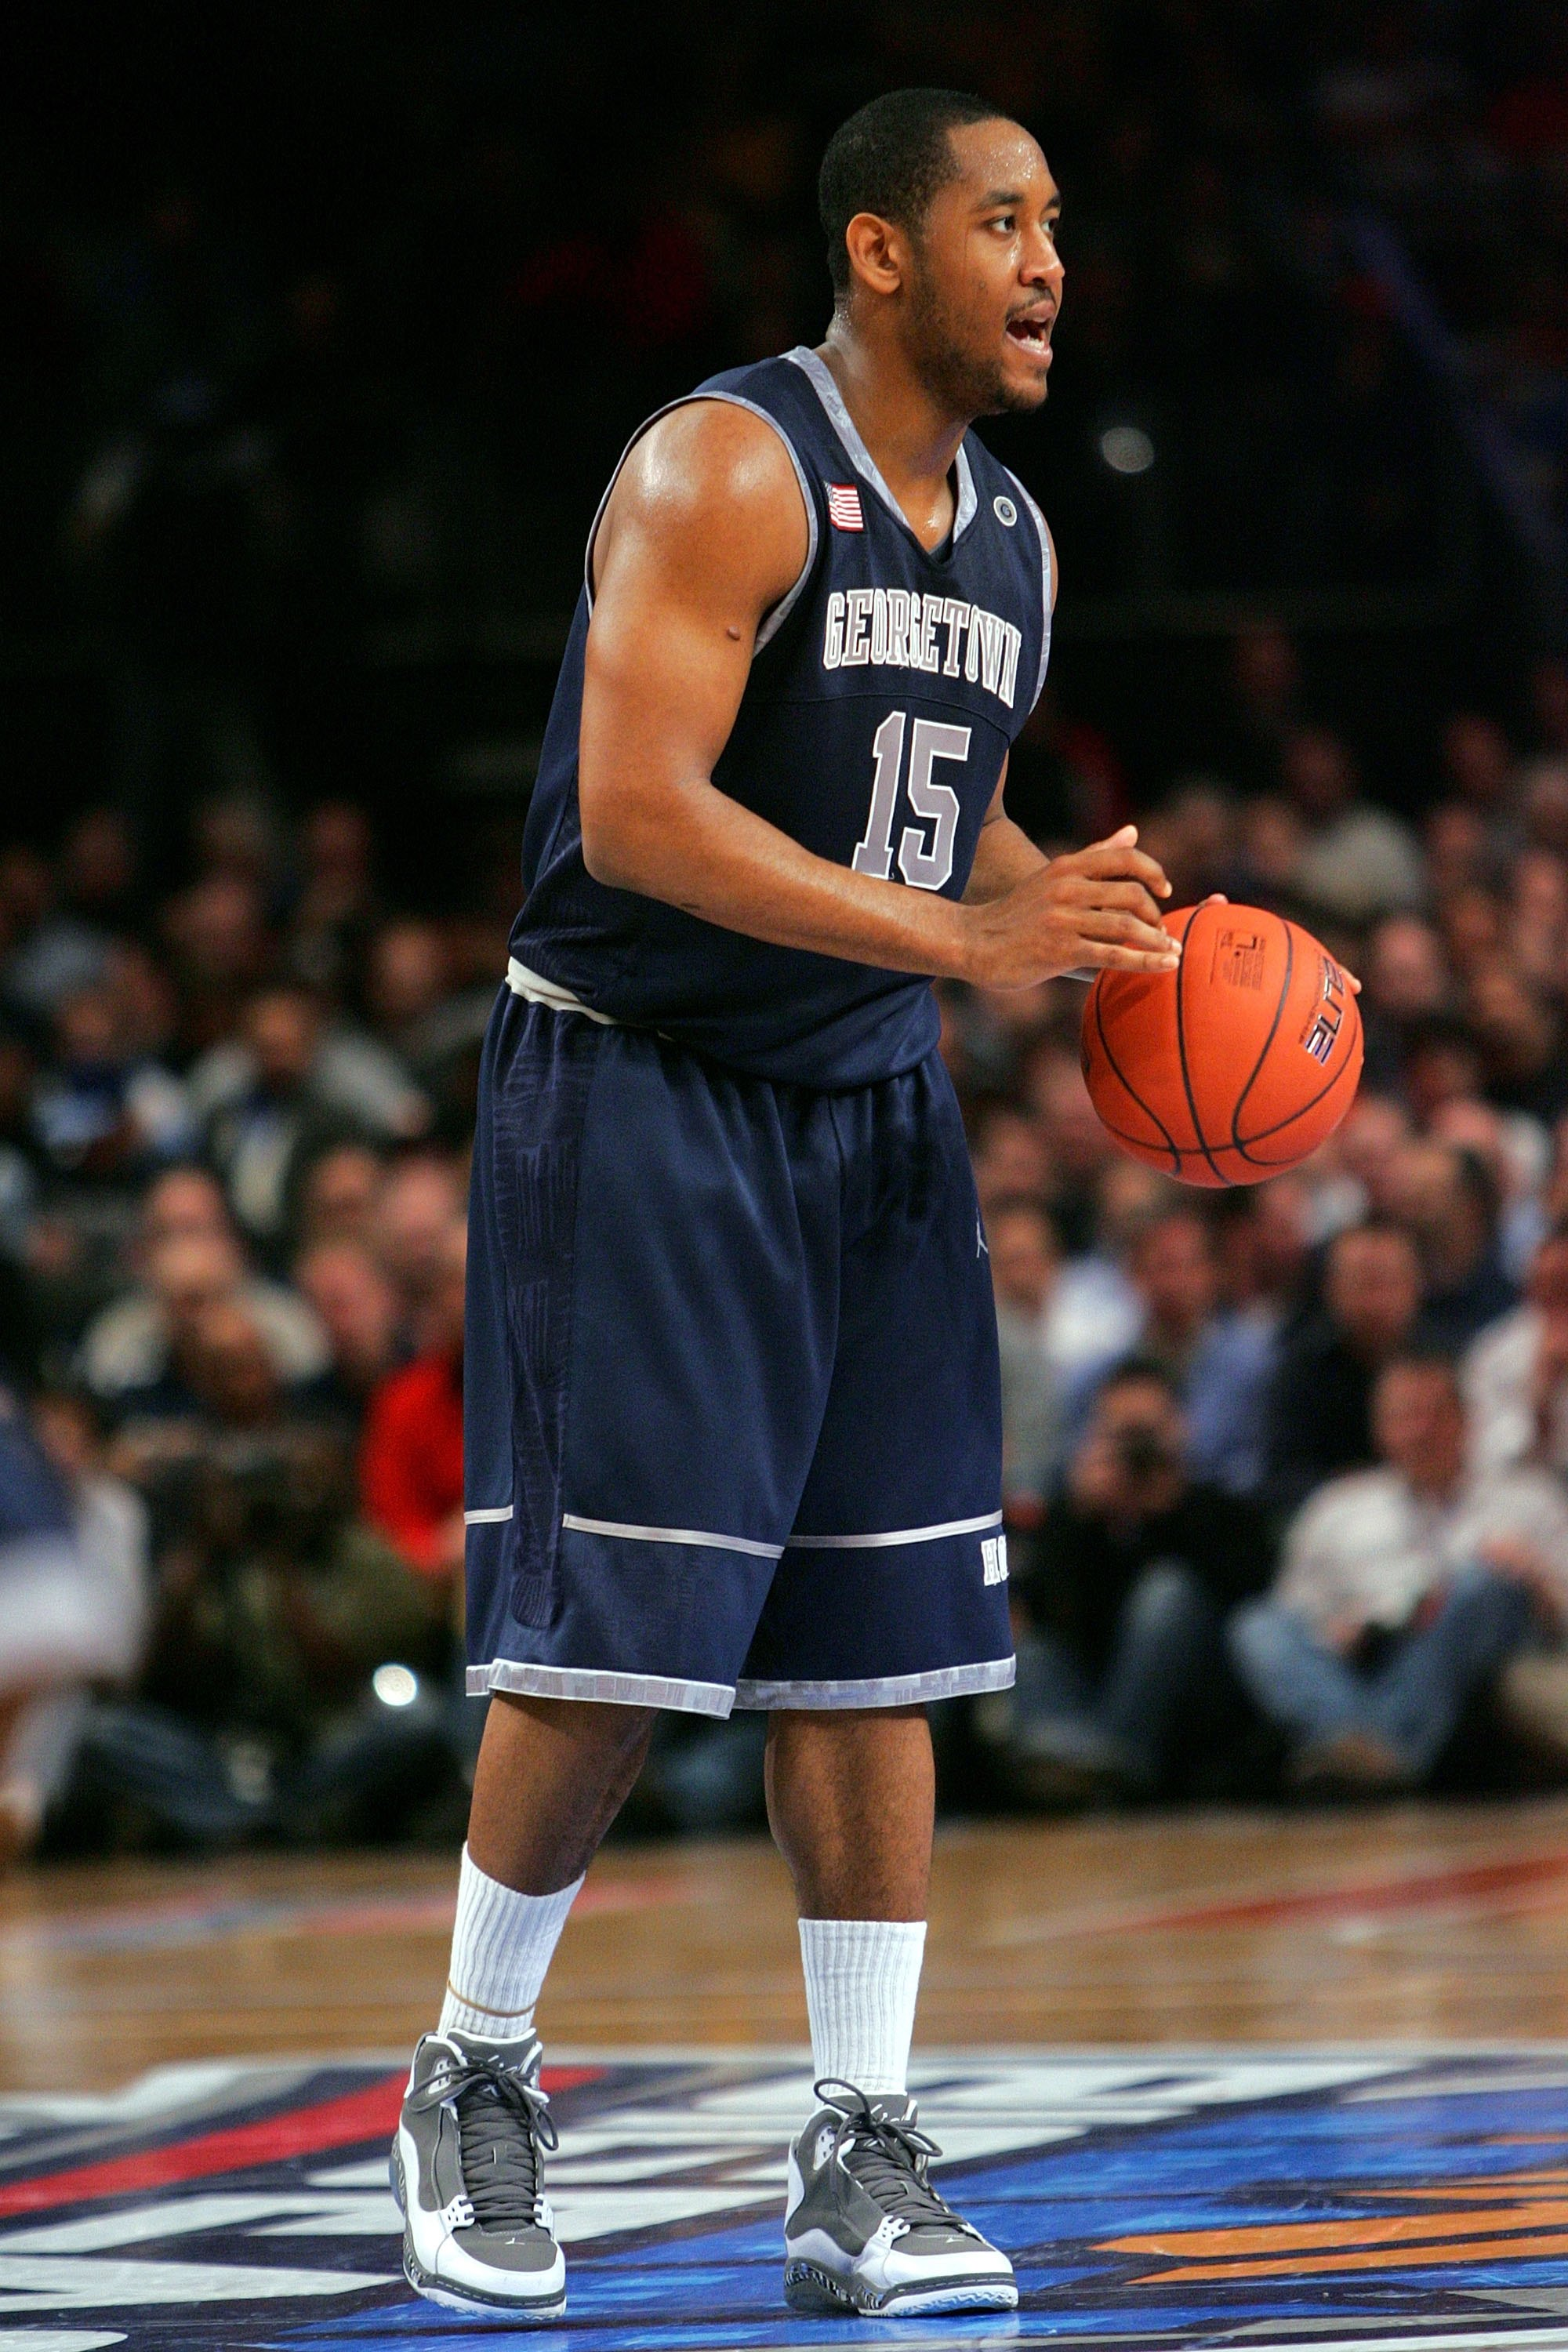 NEW YORK - MARCH 11:  Austin Freeman #15 of the Georgetown Hoyas handles the ball against the Syracuse Orange during the quarterfinal of the 2010 NCAA Big East Tournament at Madison Square Garden on March 11, 2010 in New York City.  (Photo by Chris Trotma